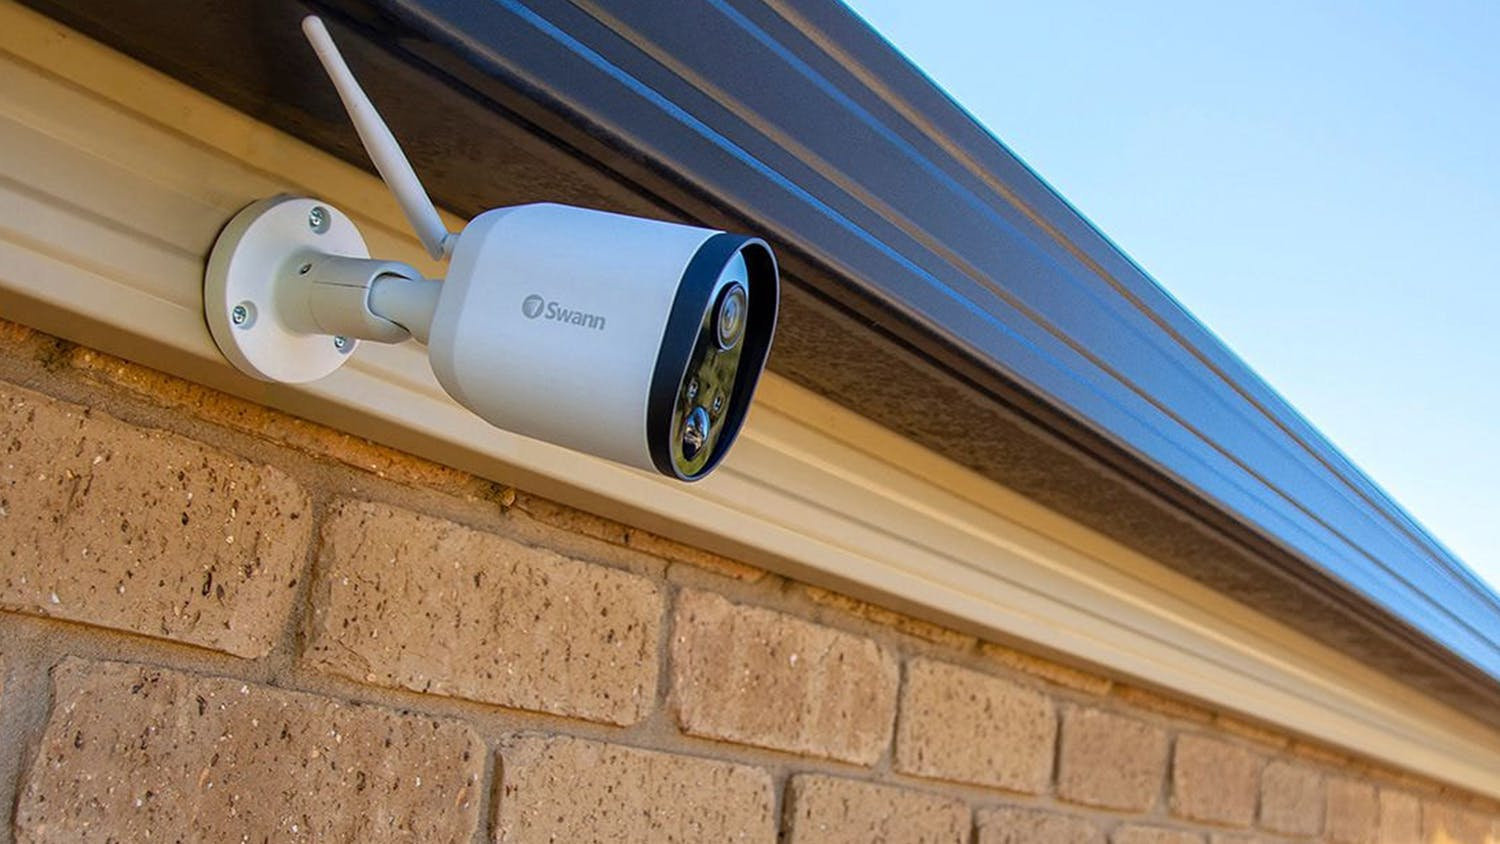 Swann Wi-Fi Outdoor Security 1080p Camera